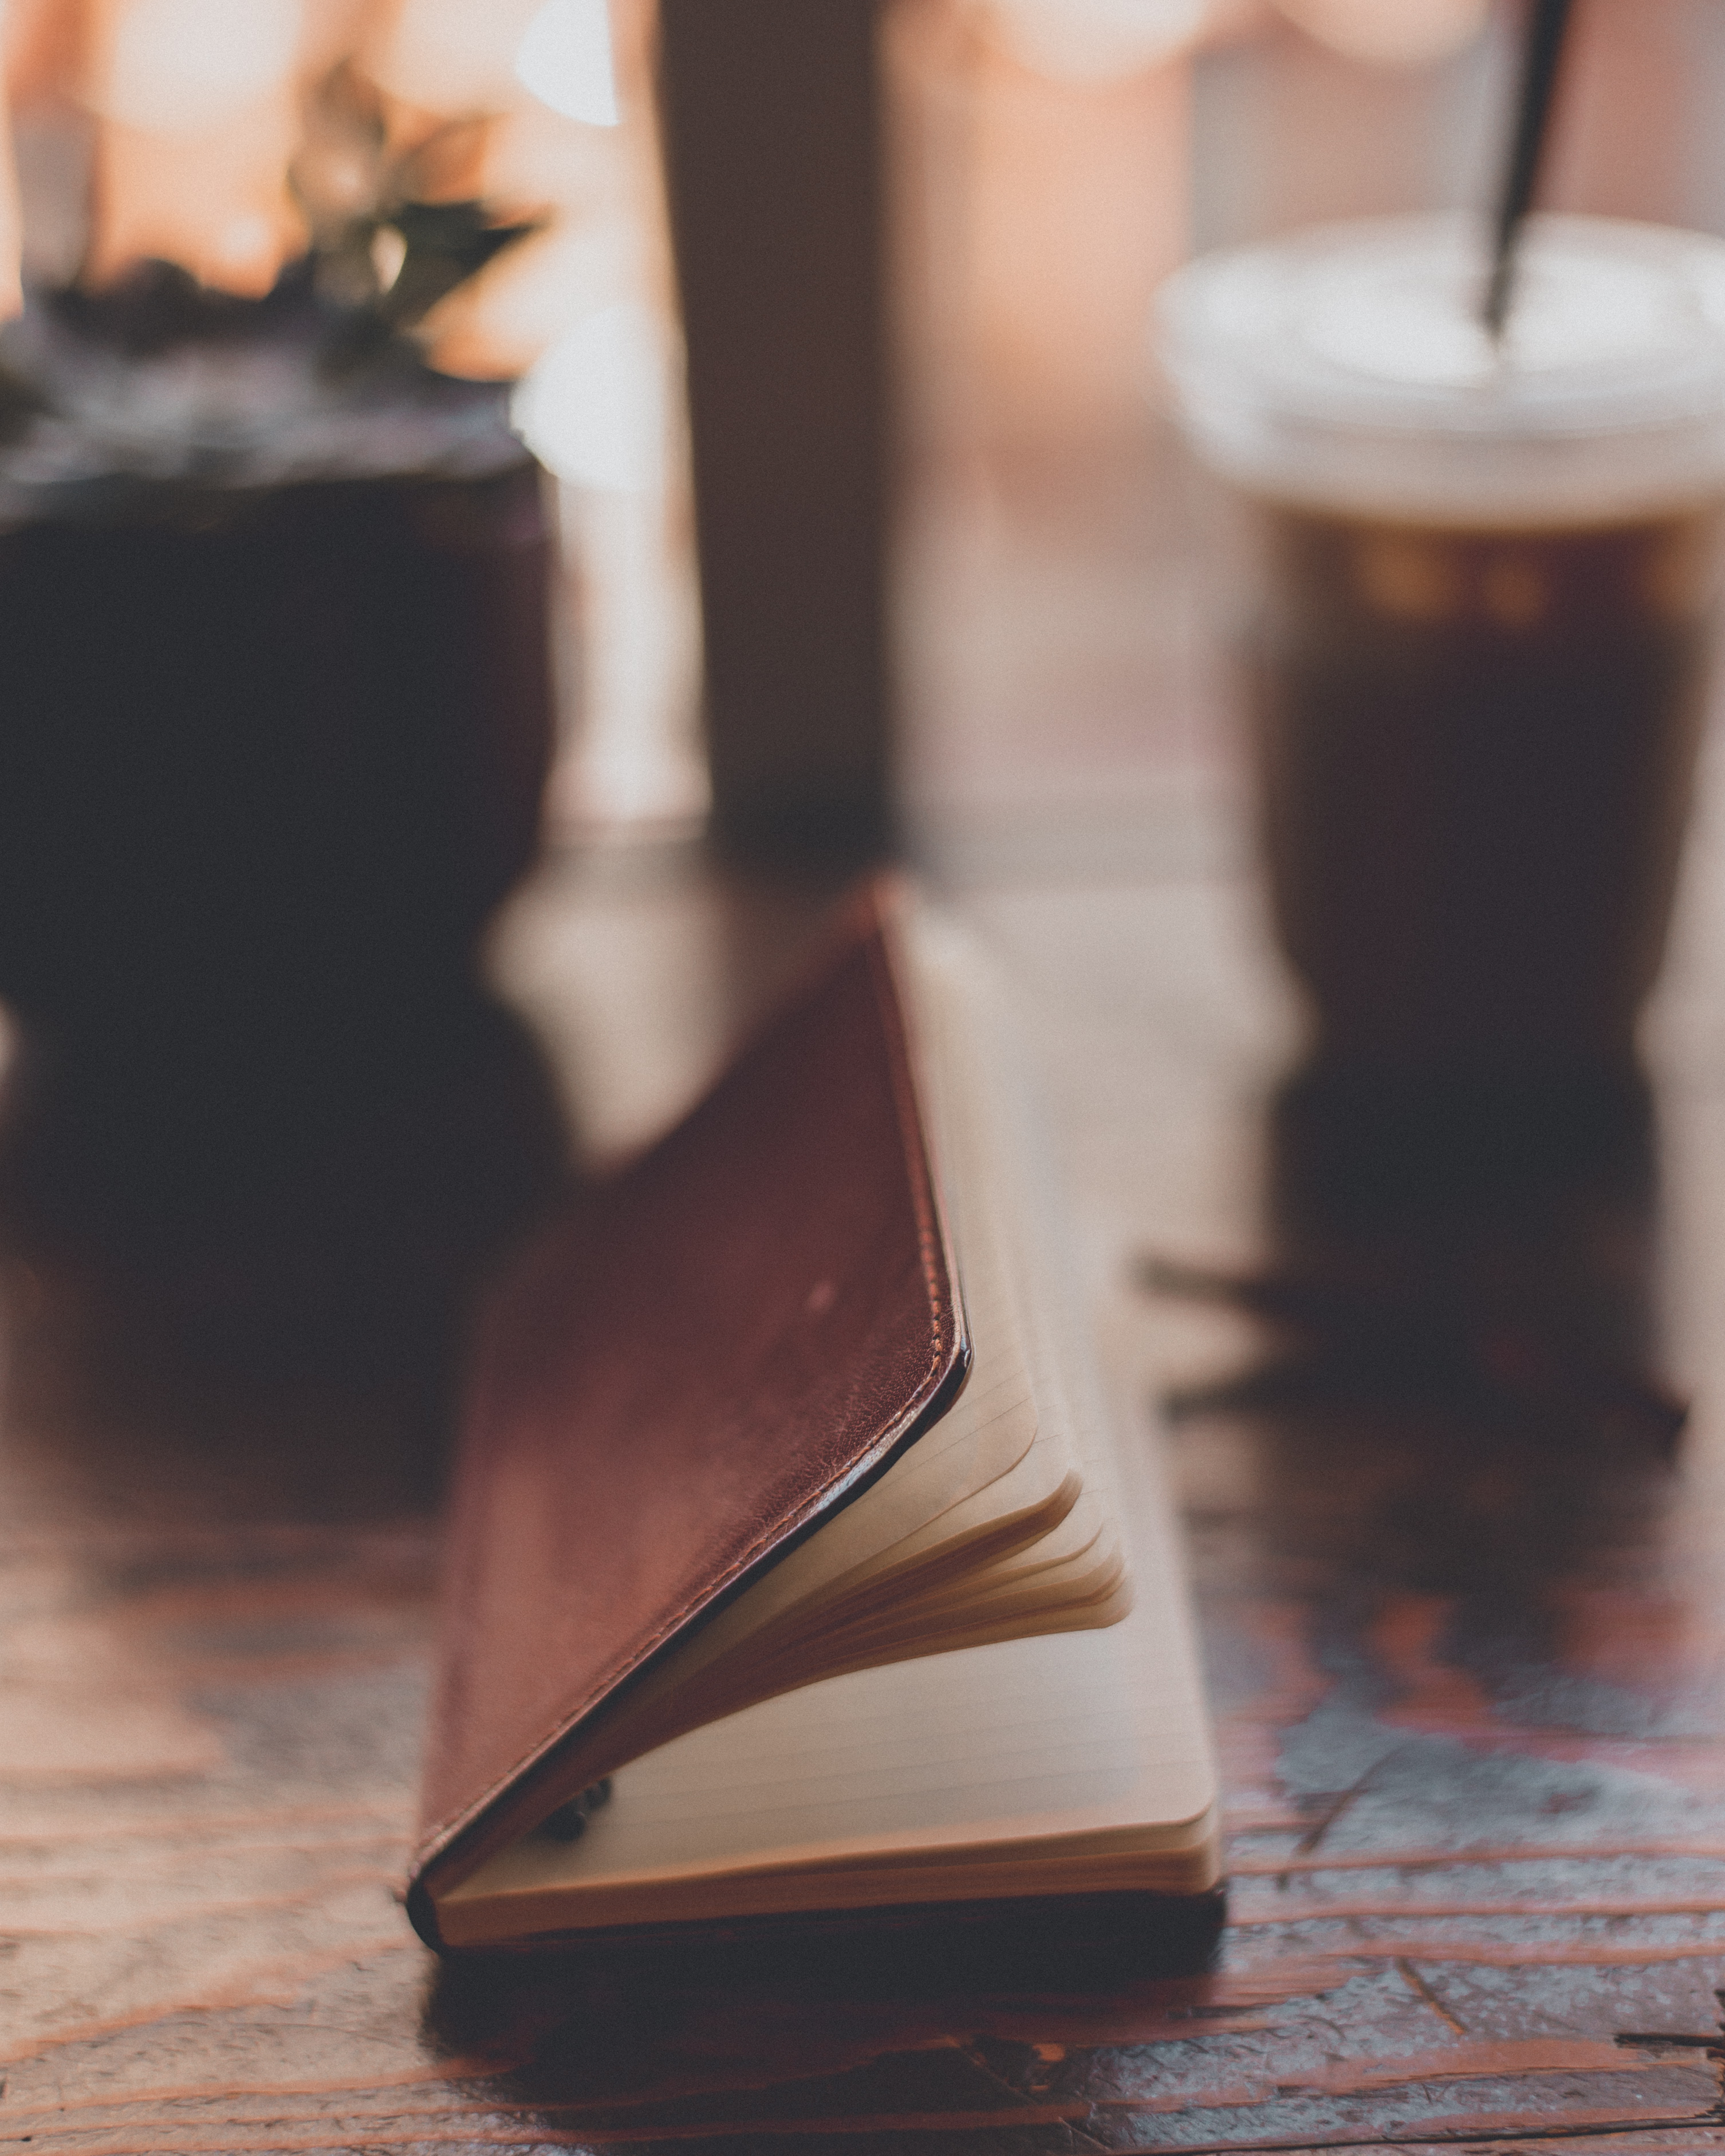 Brown Leather Book on Brown Wooden Surface